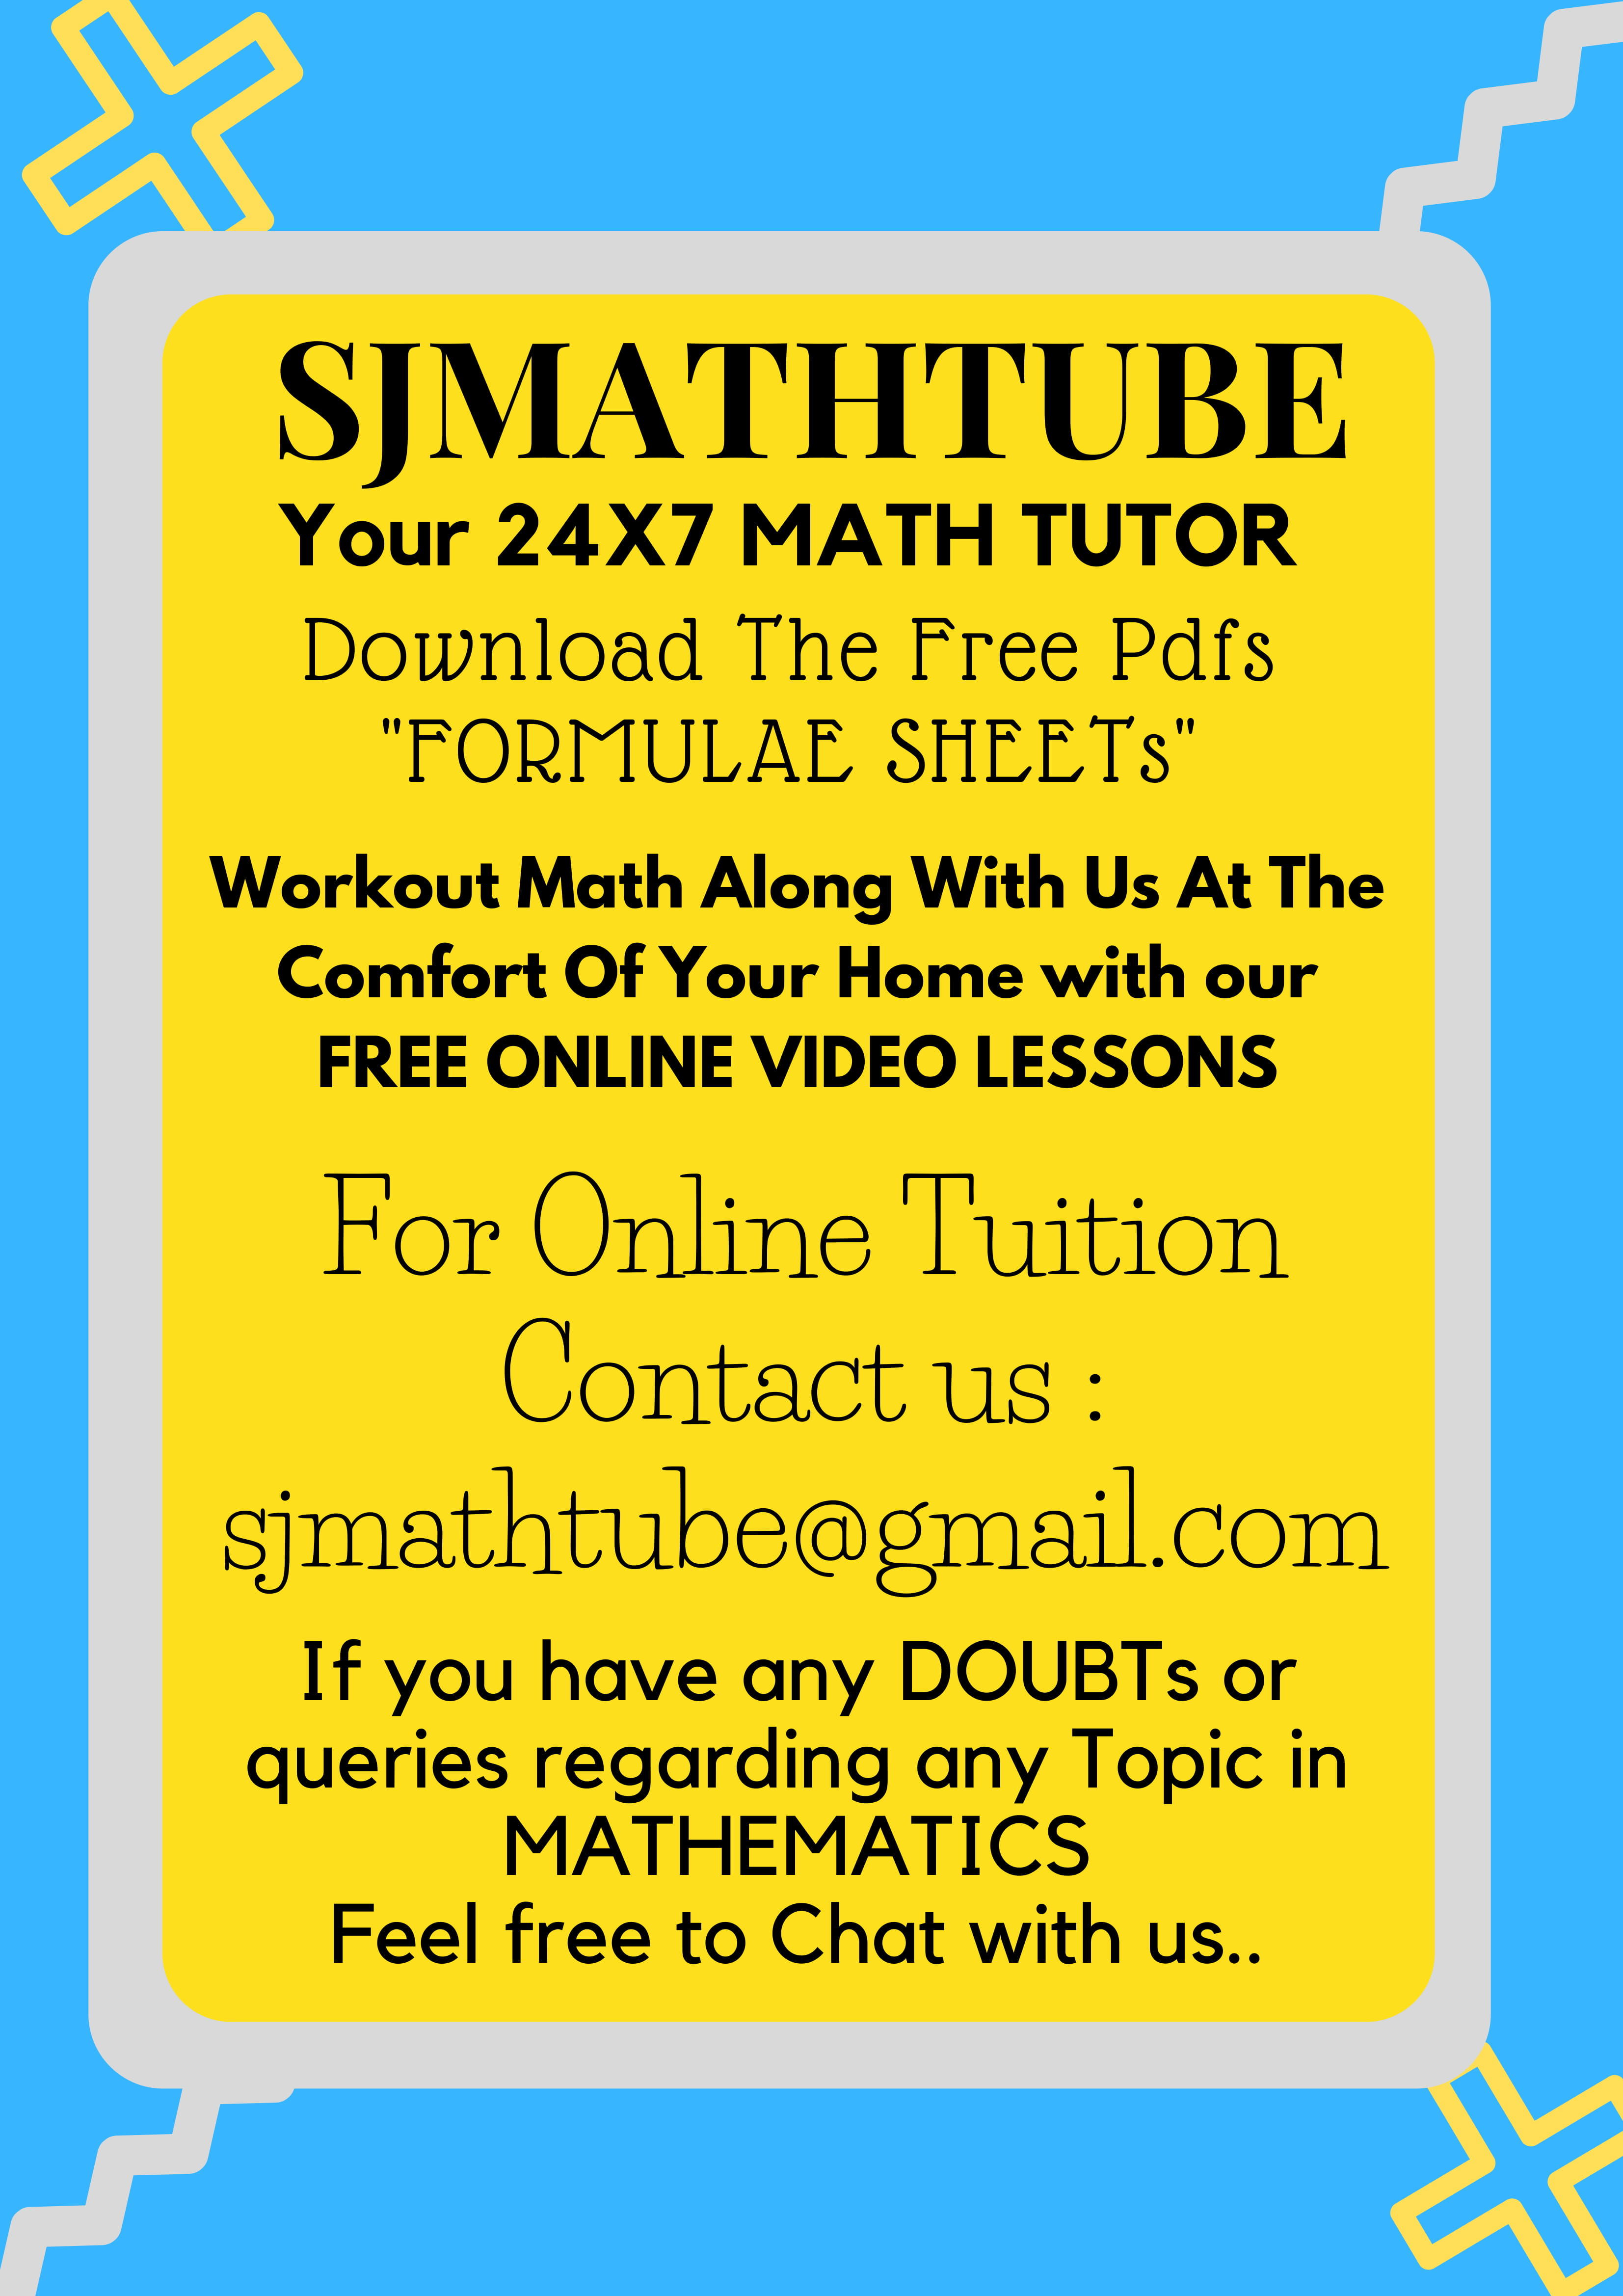 Welcome To SJMATHTUBE